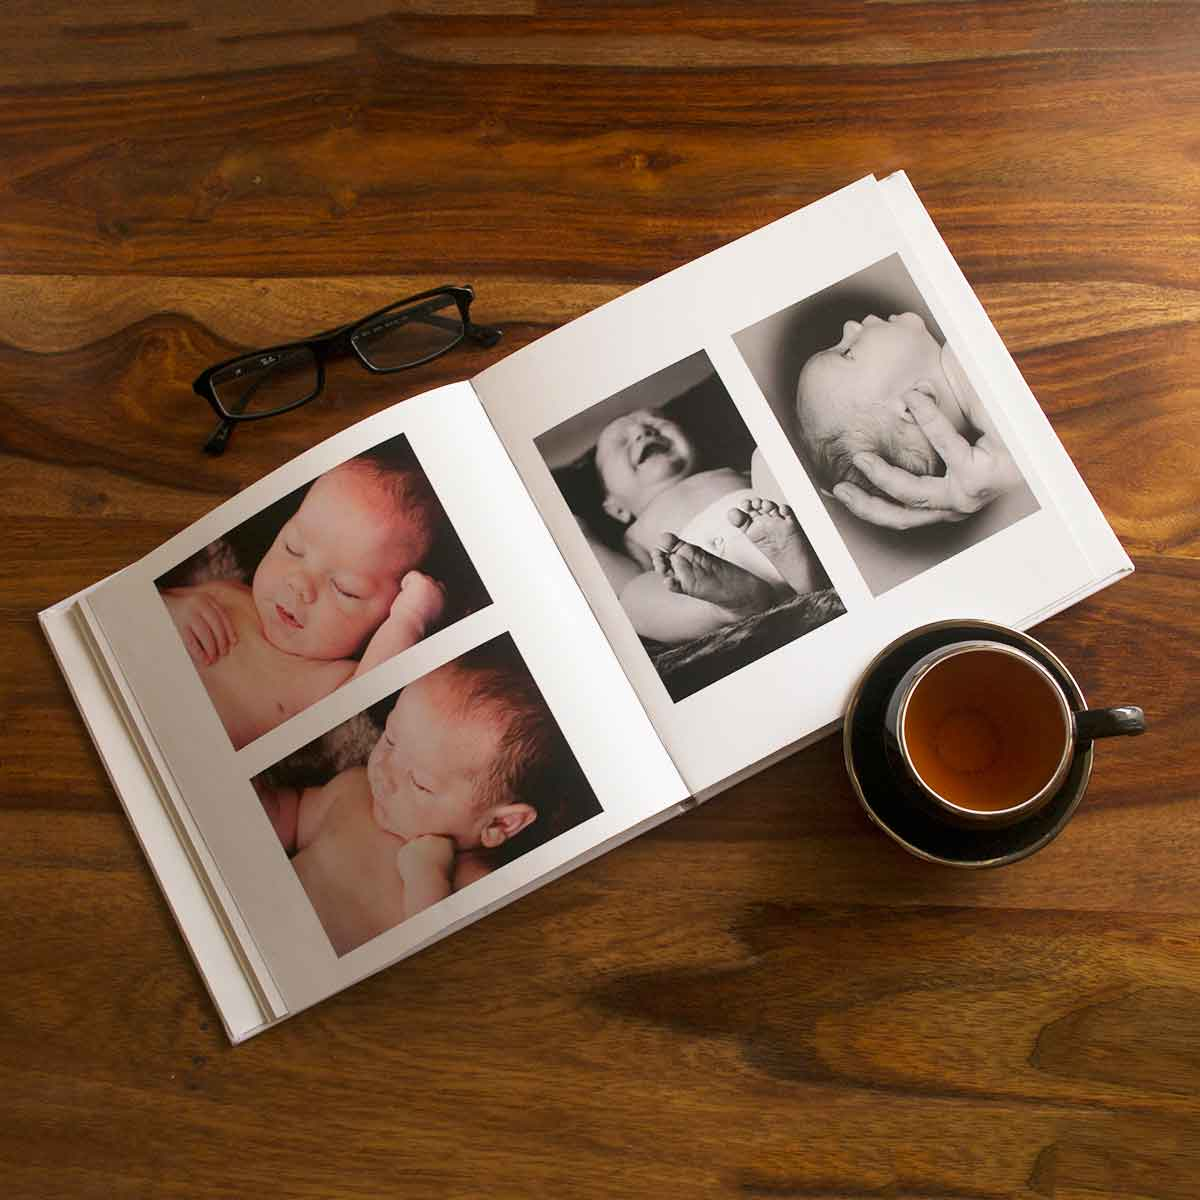 Shutterfly - Photo Books, Holiday Cards, Photo Cards Create a book from photos